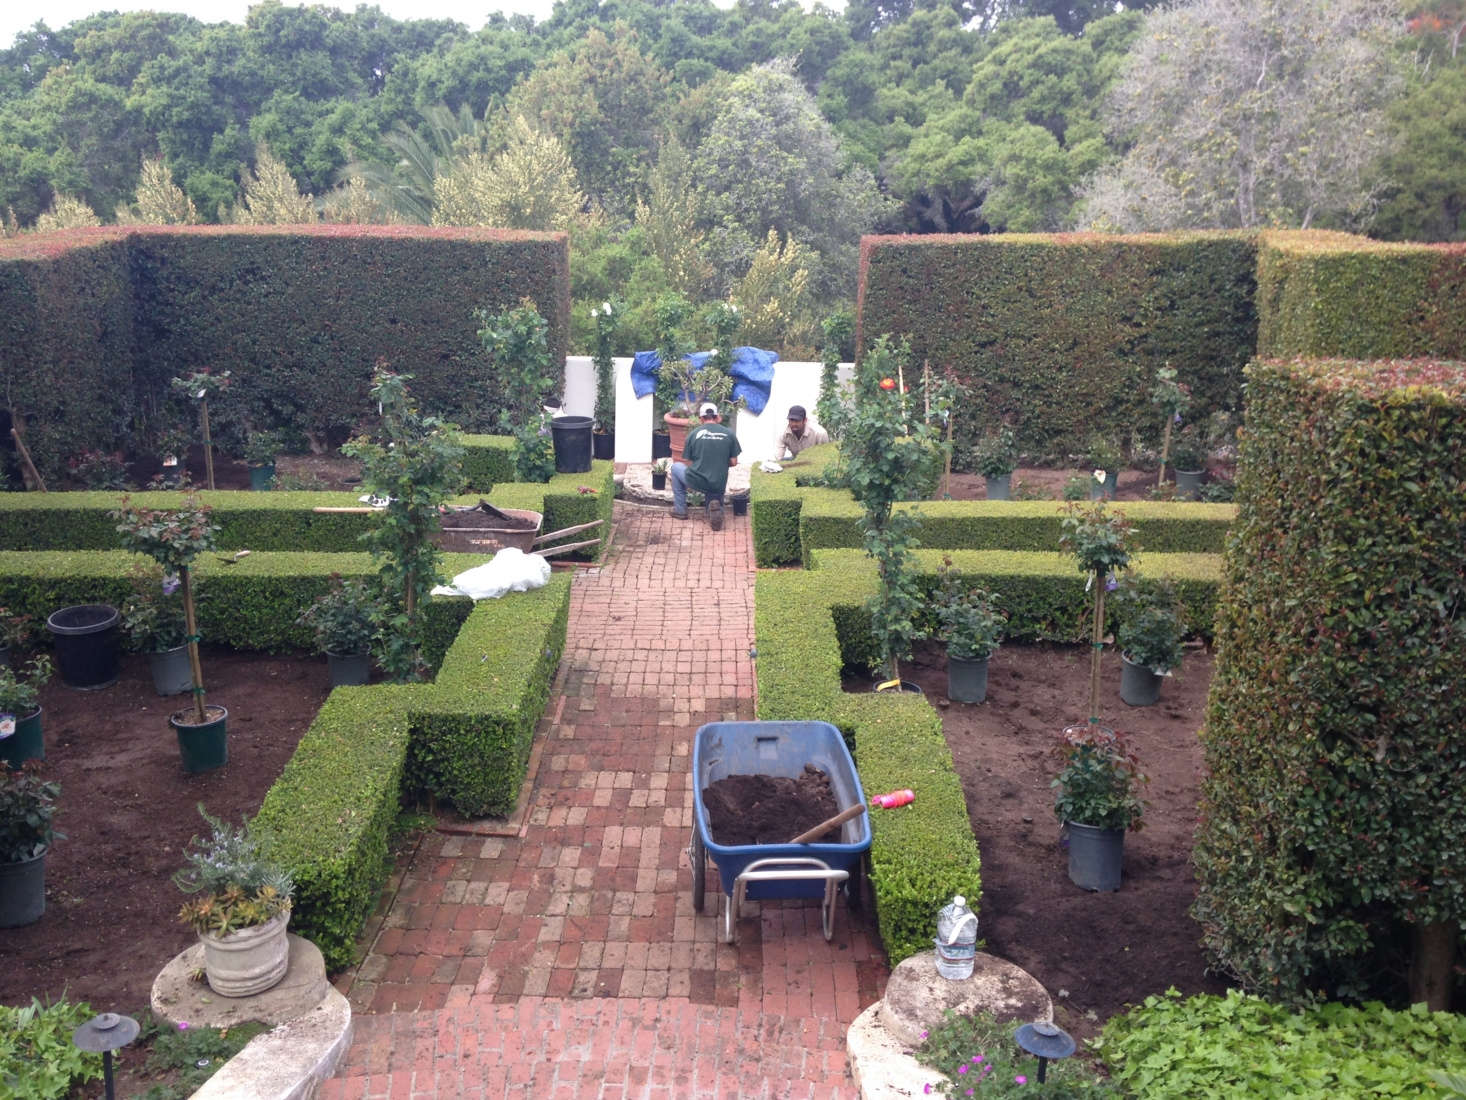 The restoration of the rose garden in progress, with history in mind. Photograph courtesy of Roberto Sosa.